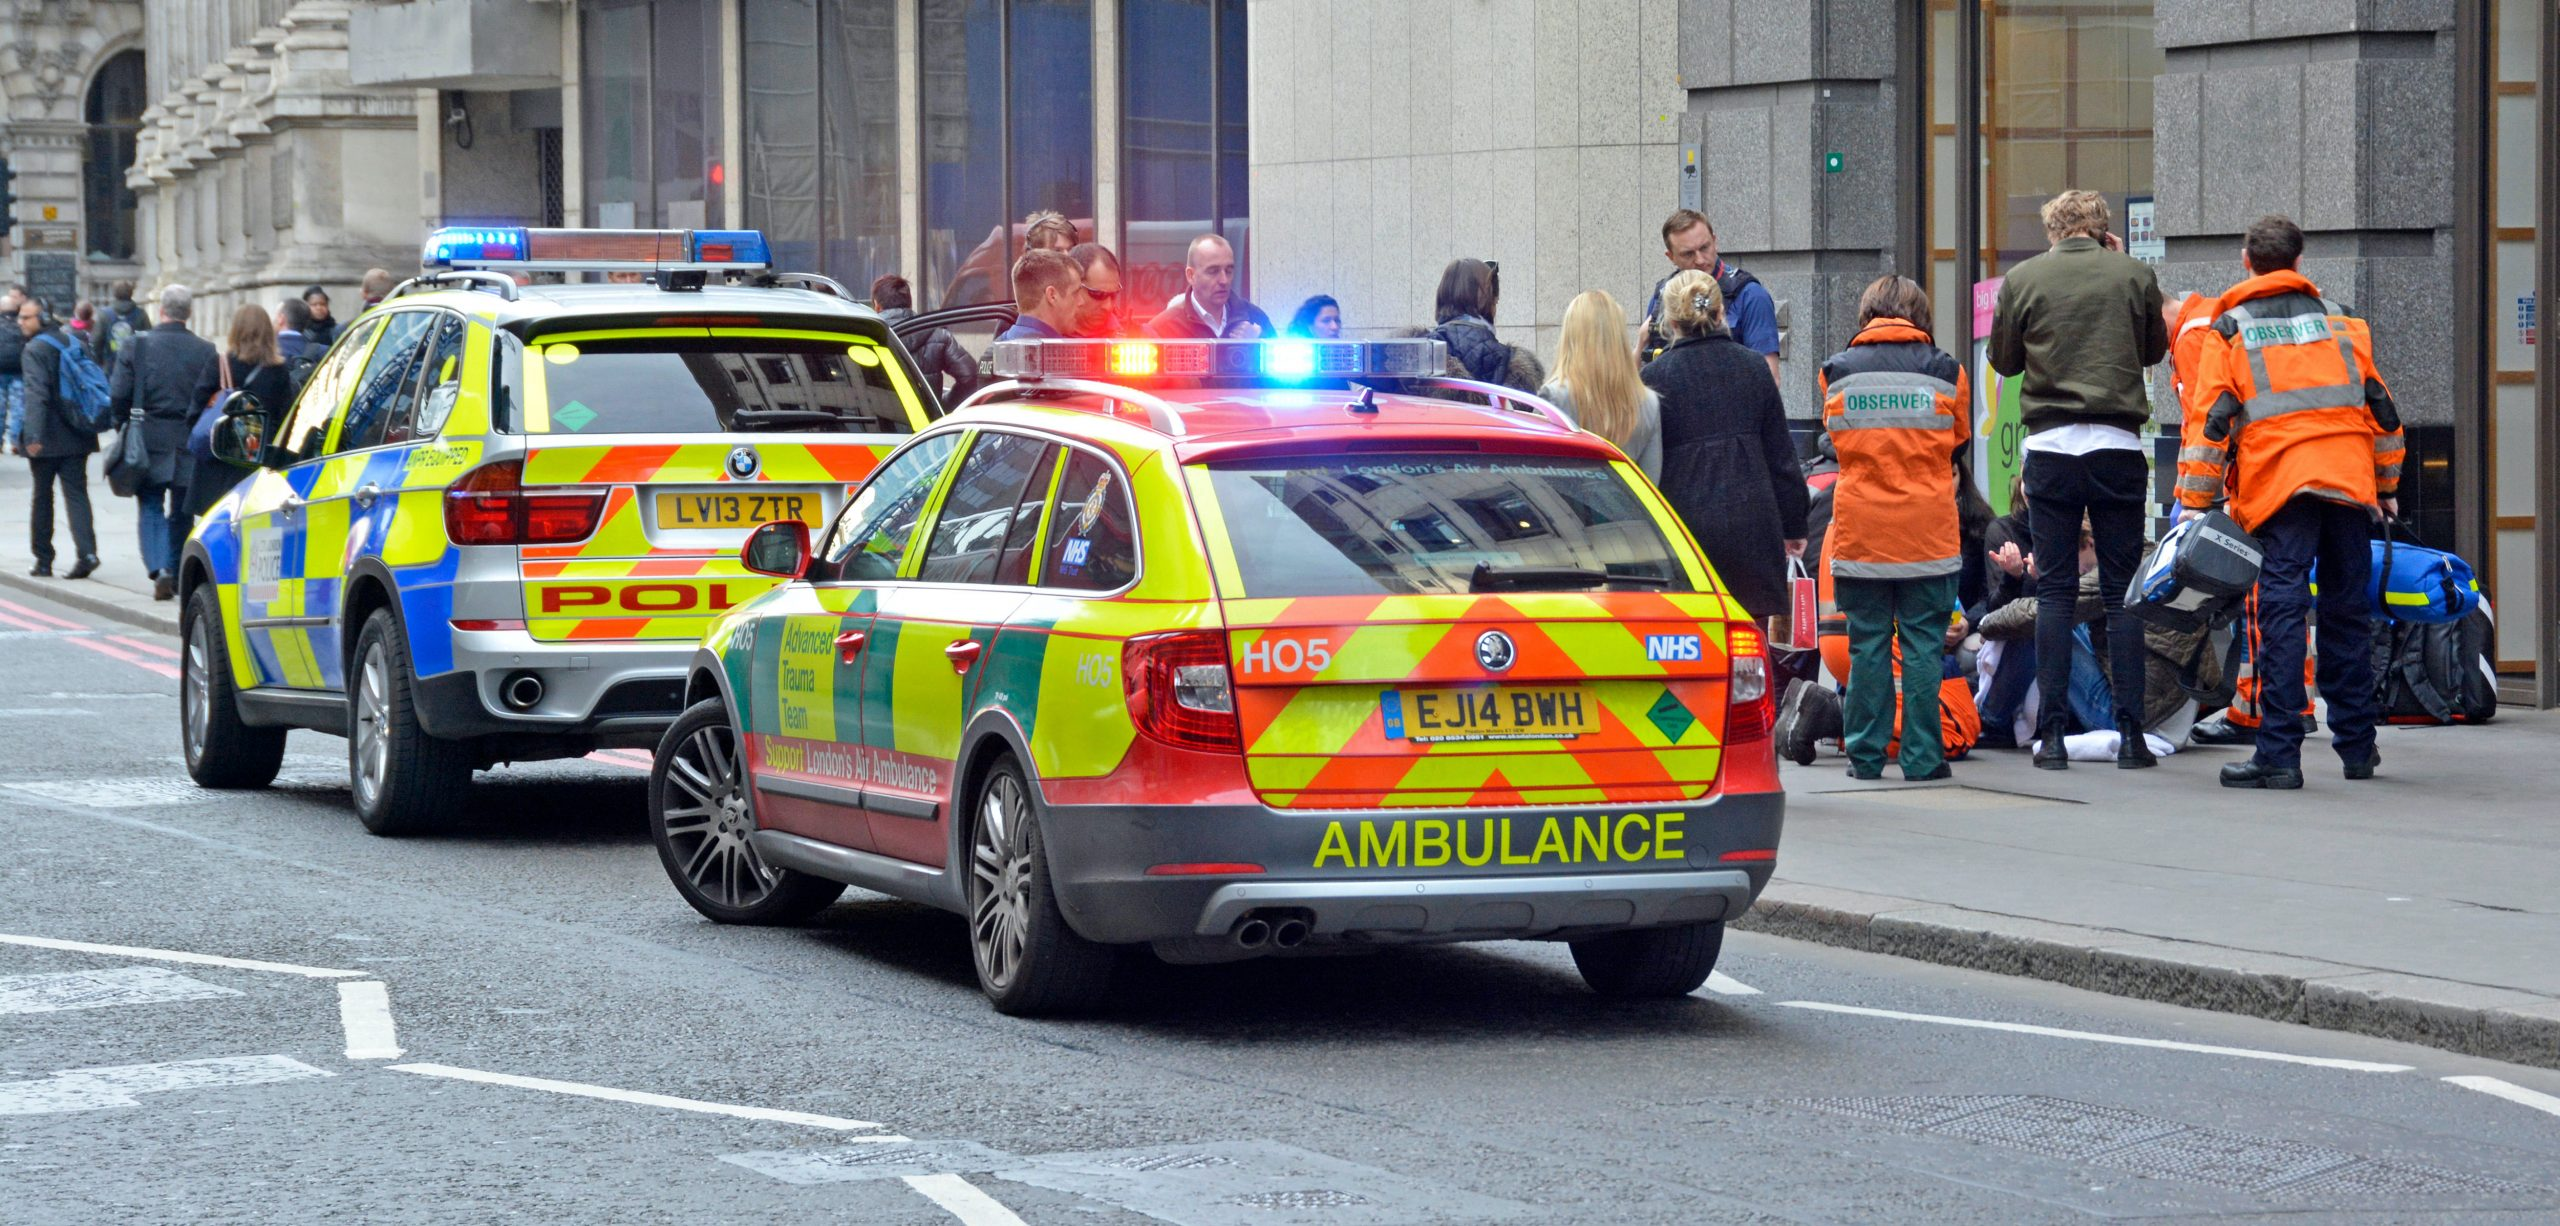 EJ6AMG Medics and police with onlookers around a pedestrian on pavement requiring medical assistance with parked emergency vehicles